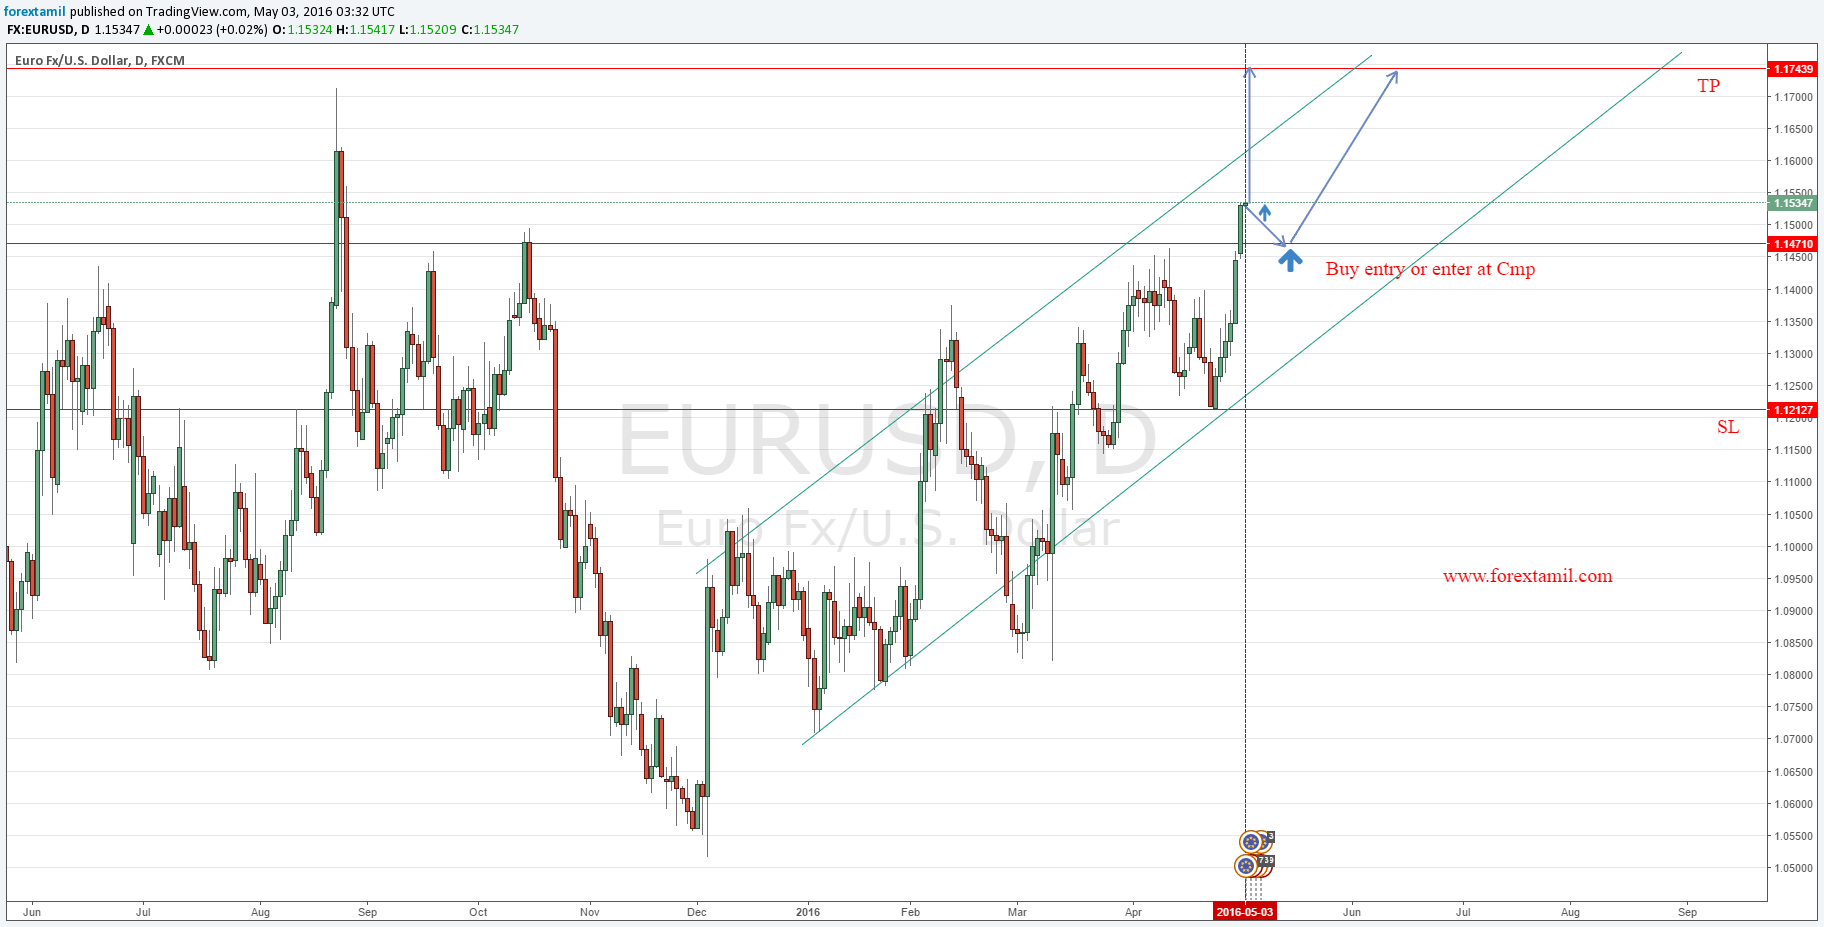 BUY EUR/USD Professional forex,free trading videos,Forex tradind easy,Fx trading easy,Fx market news,Forex trade news